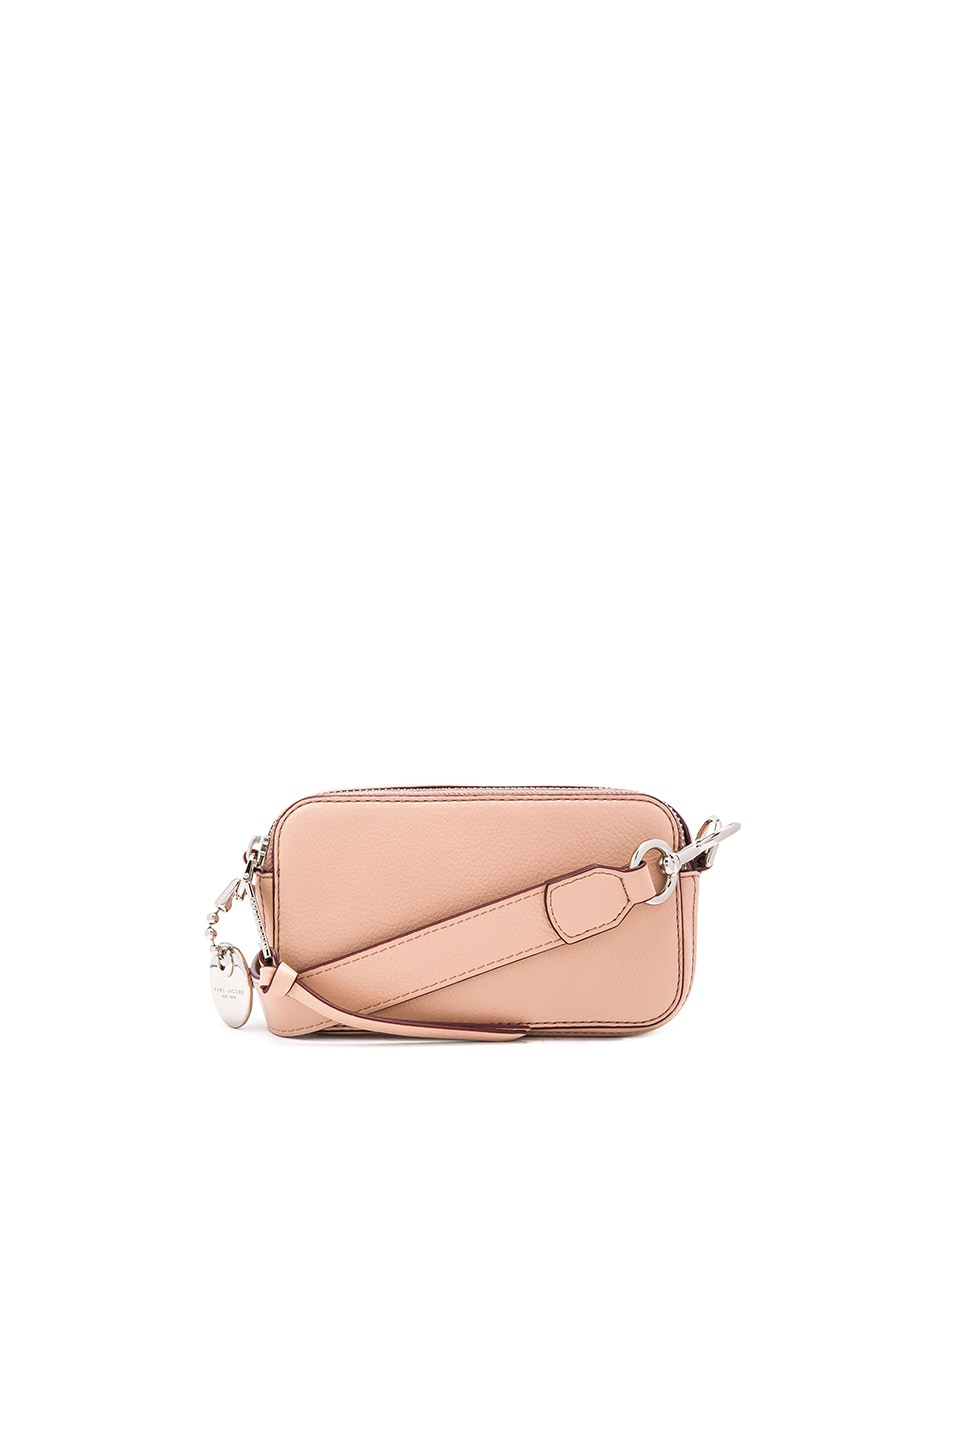 Marc Jacobs Recruit Camera Bag in Nude